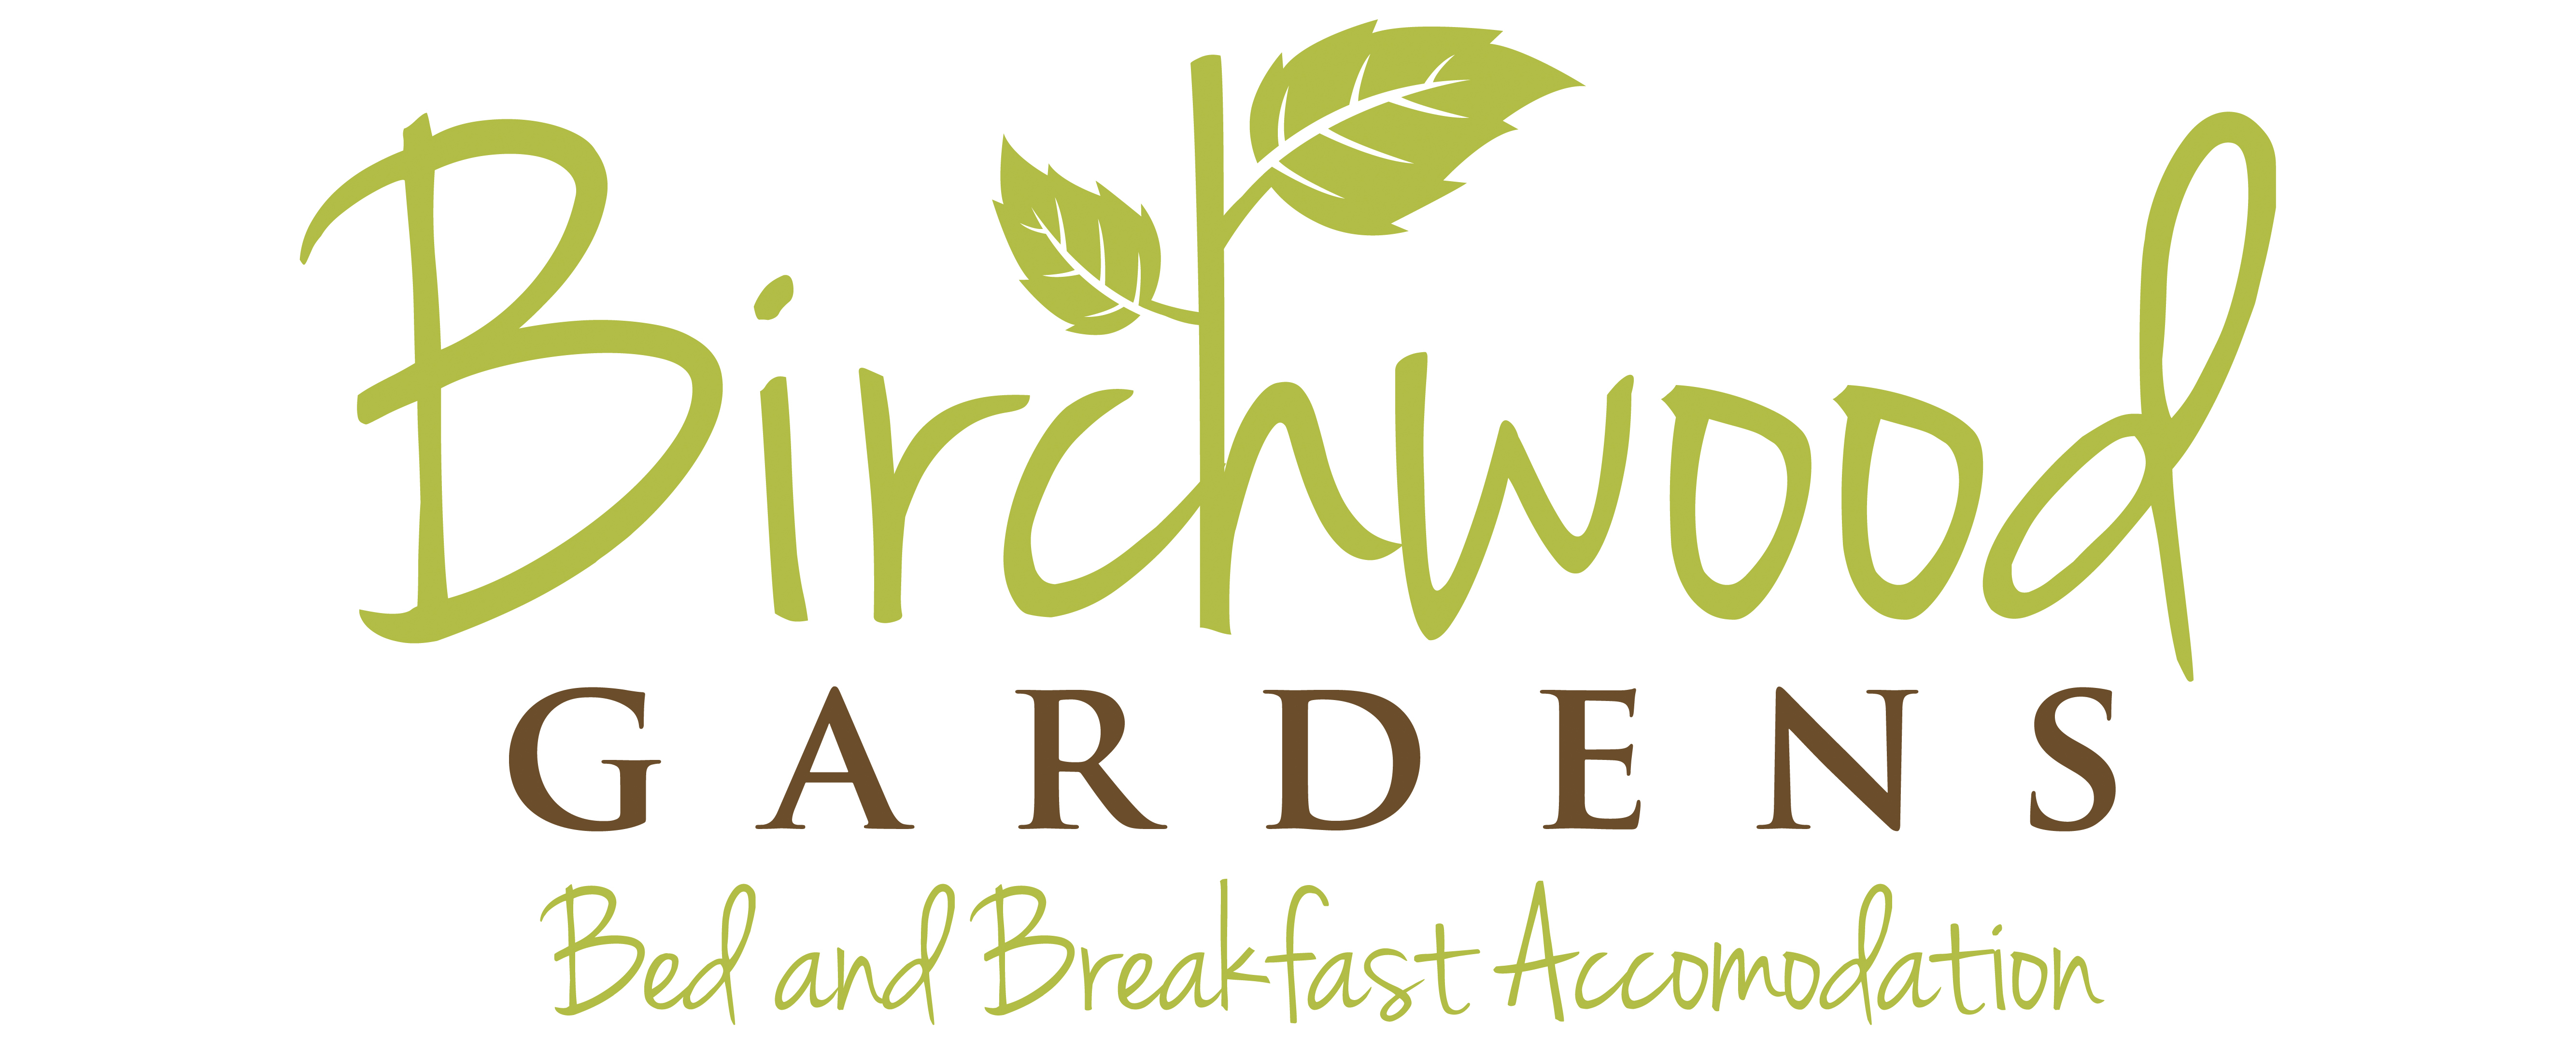 Birchwood Gardens